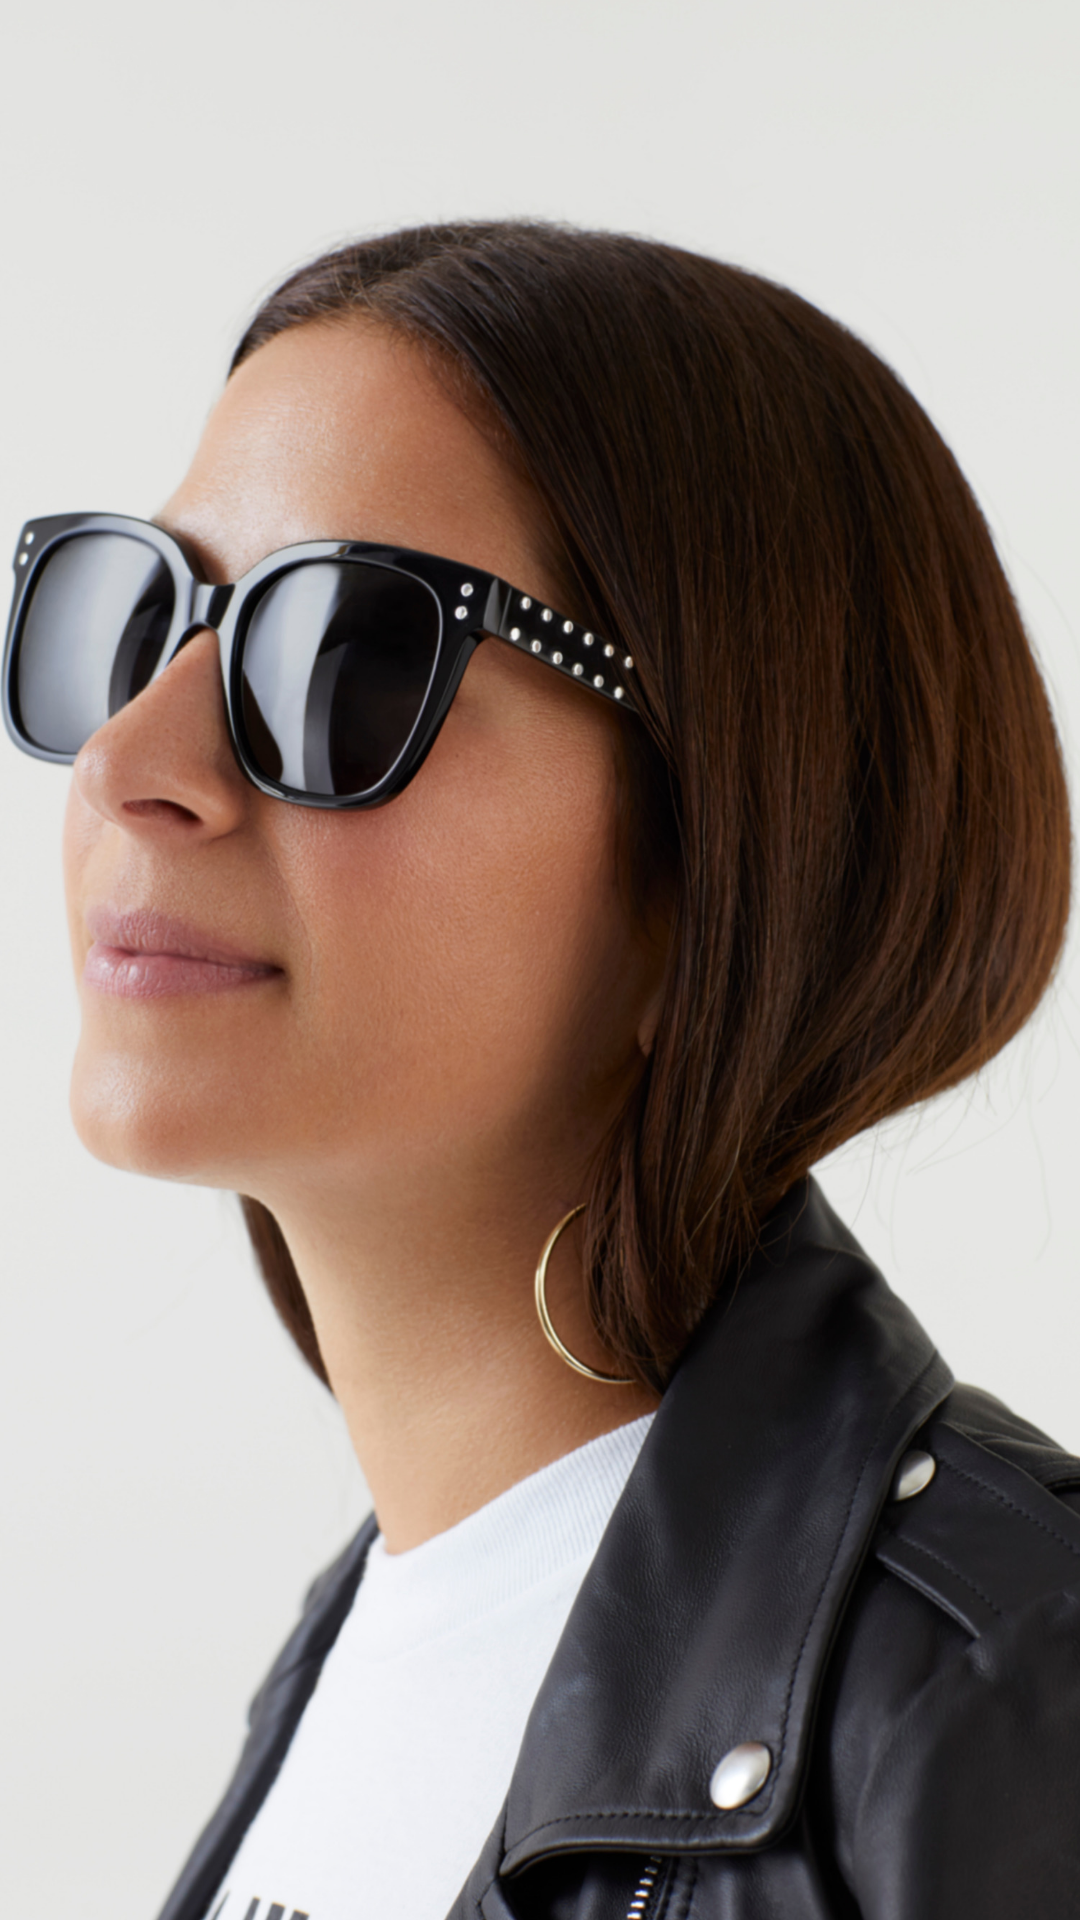 dde787295f Rebecca Minkoff wears the Cyndi Acetate Square Sunglasses from her  sunglasses collection.